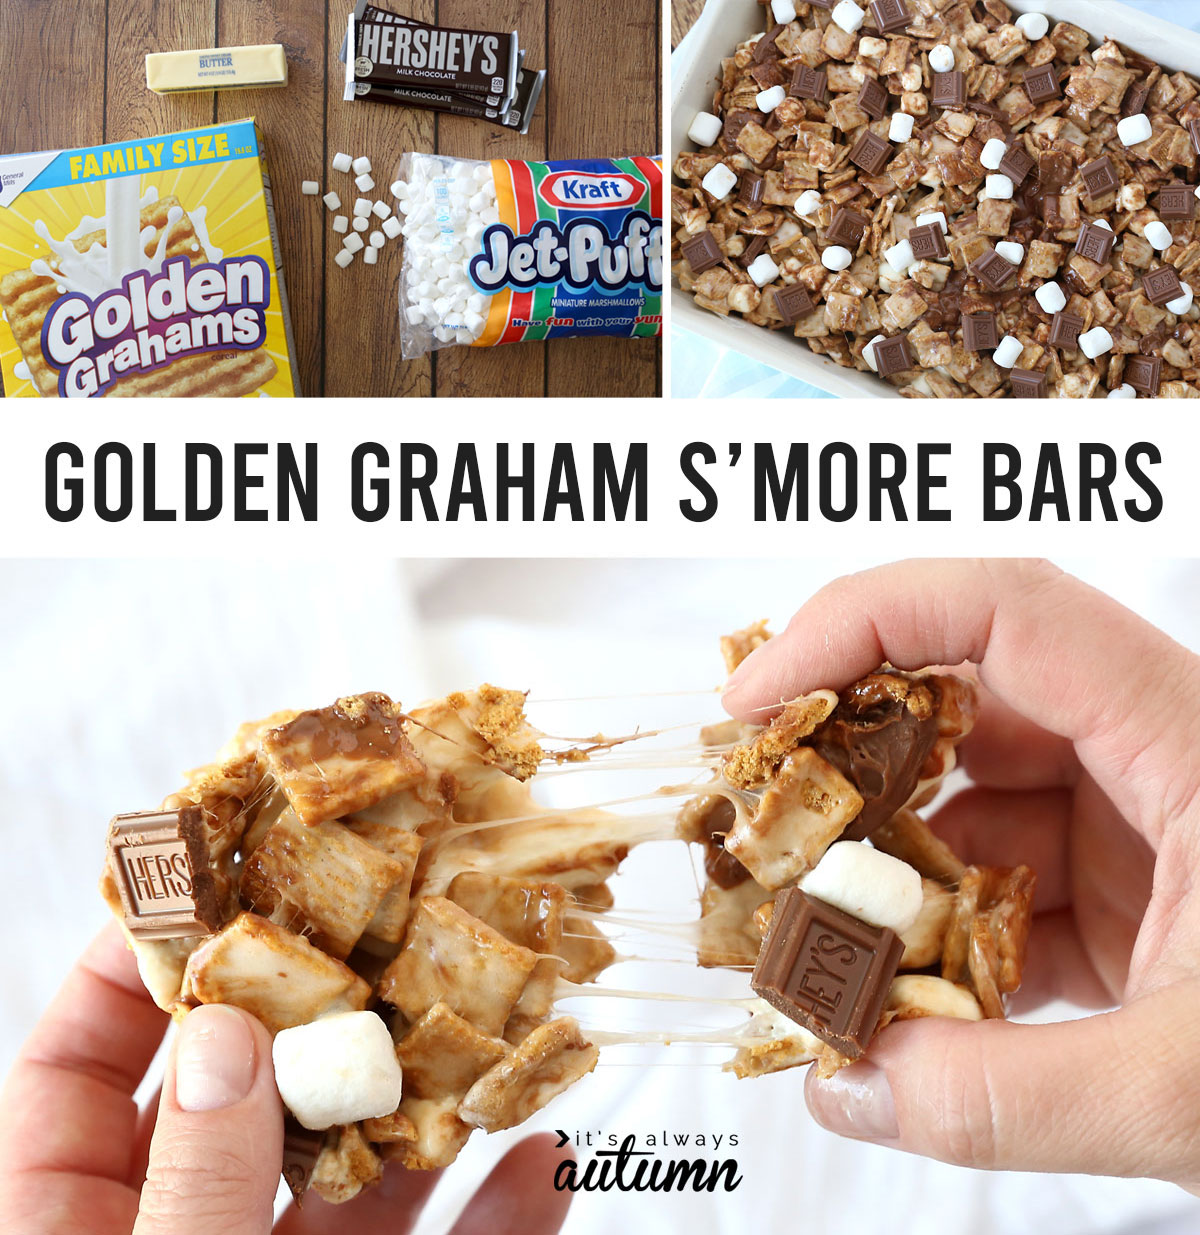 Chewy S'mores bars made with Golden Grahams, marshmallows, and milk chocolate